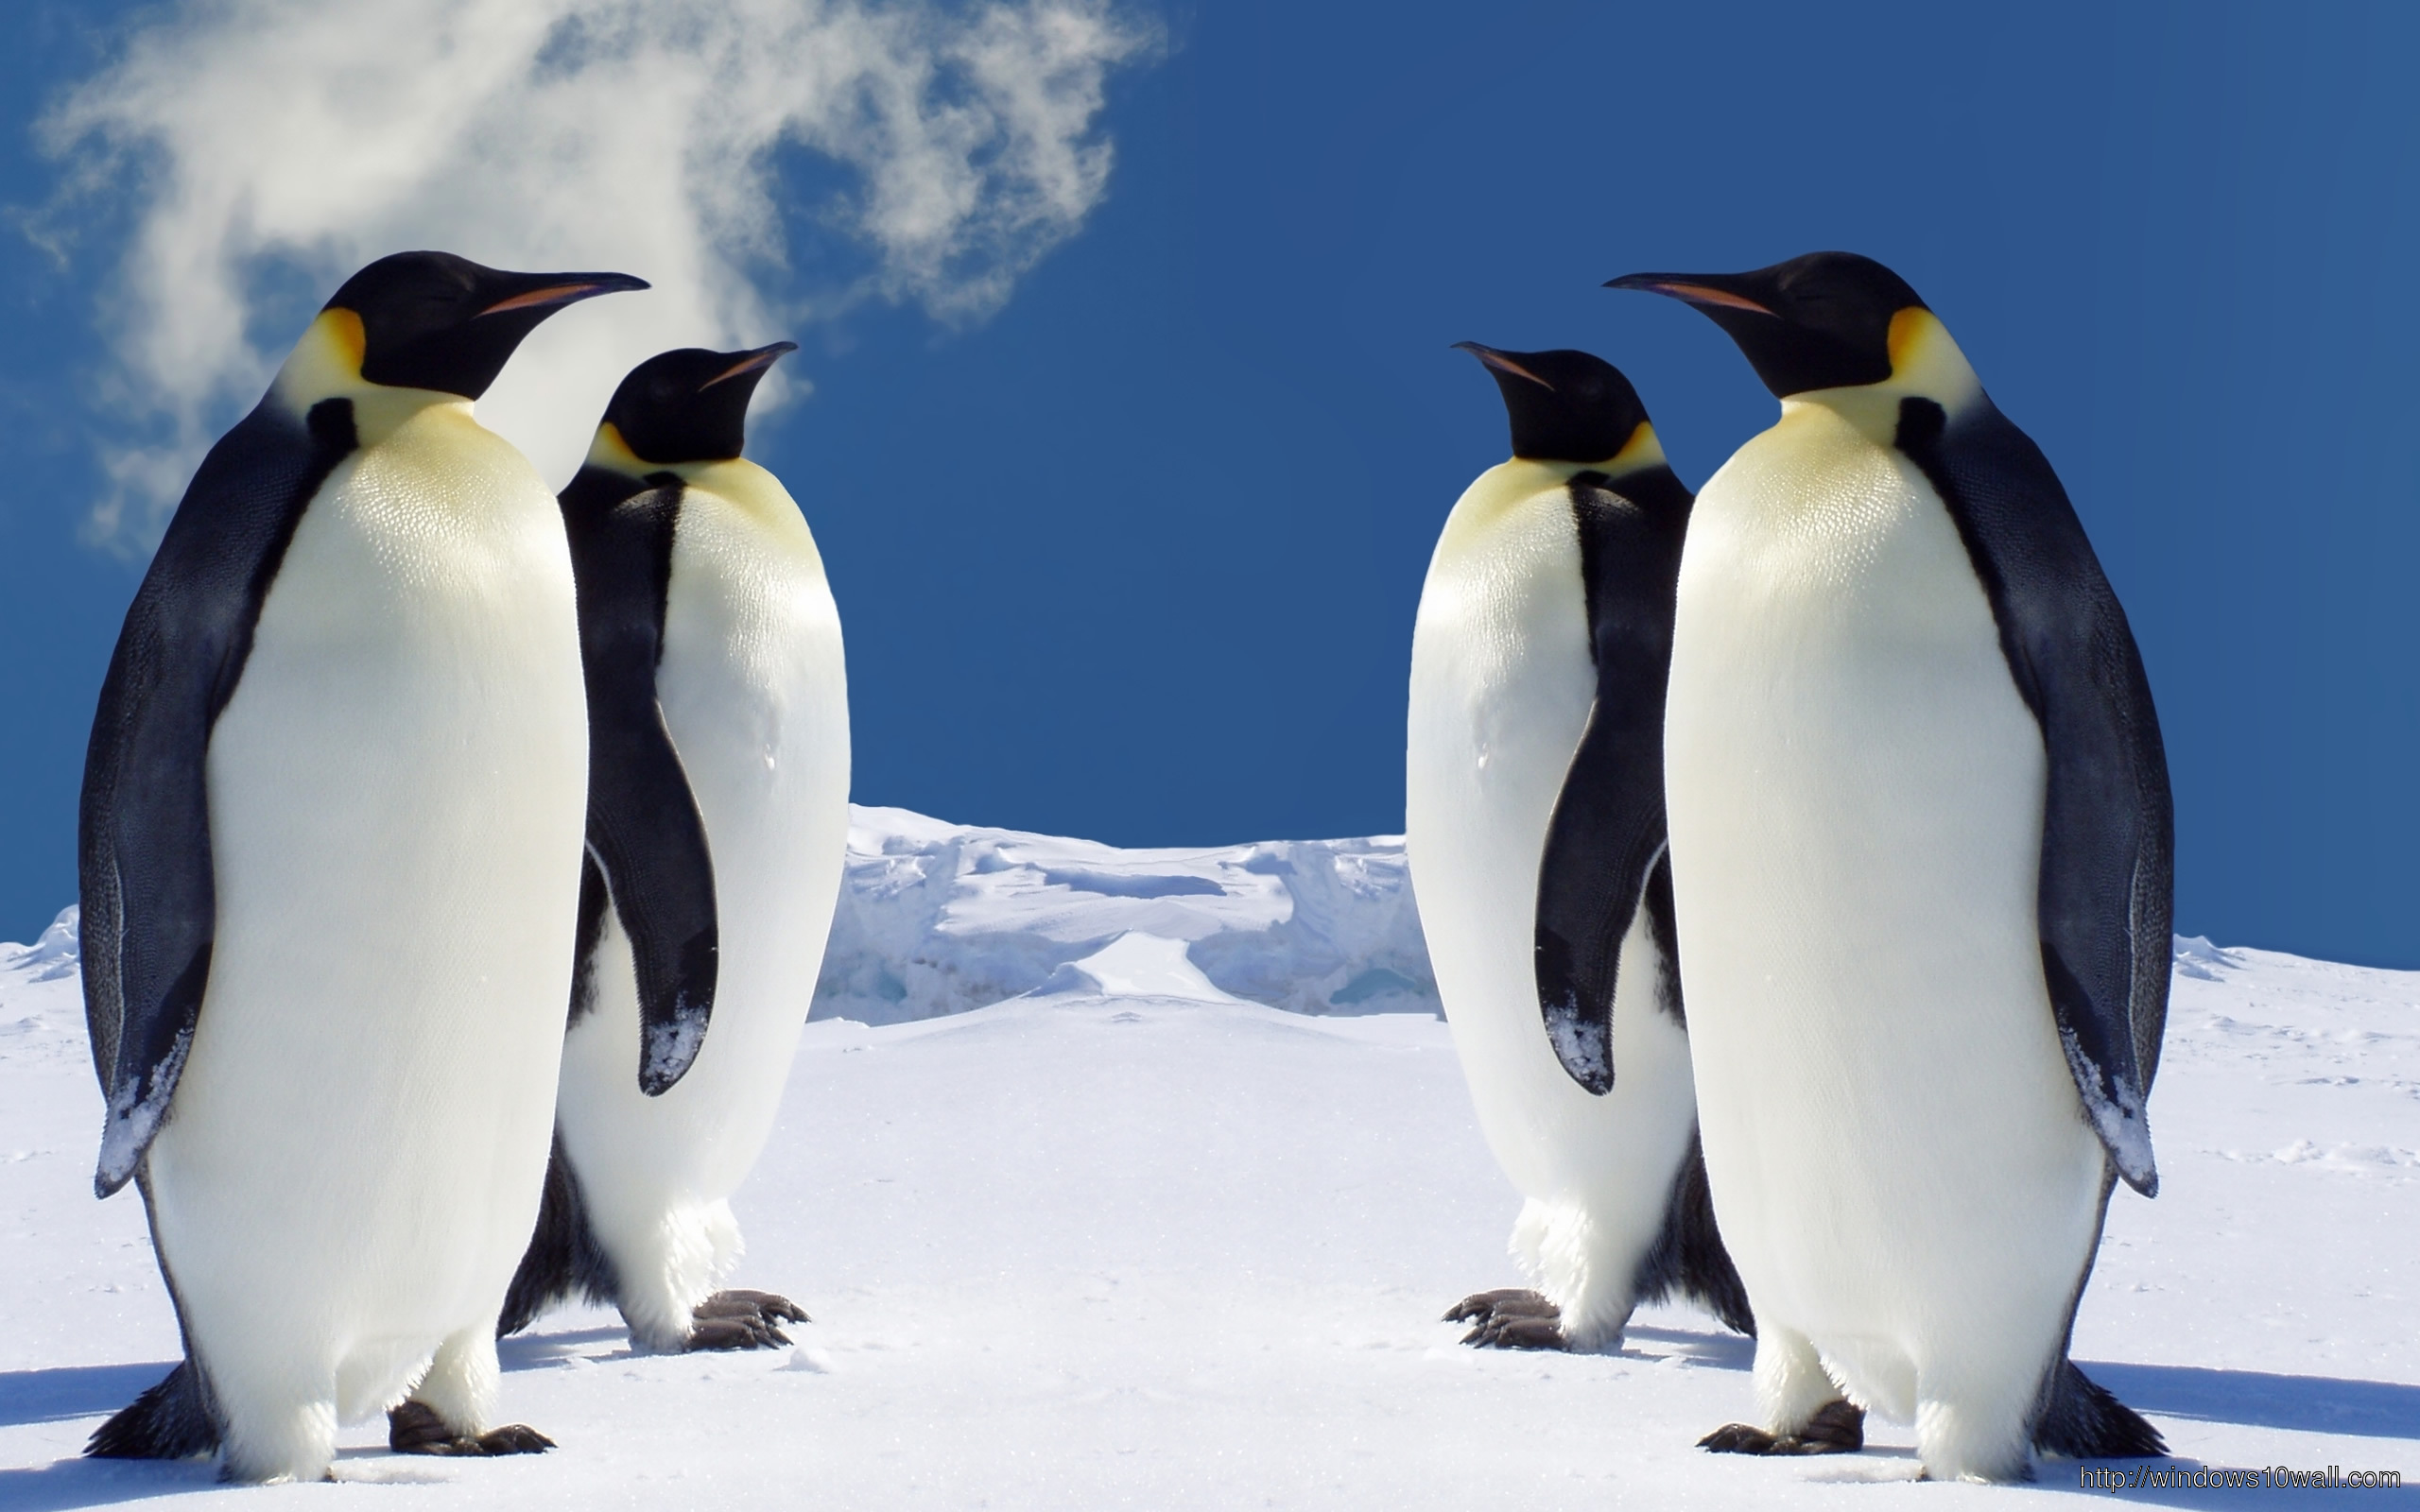 Sad Girl Hd Wallpaper With Quotes Cute Penguins Picture Windows 10 Wallpapers